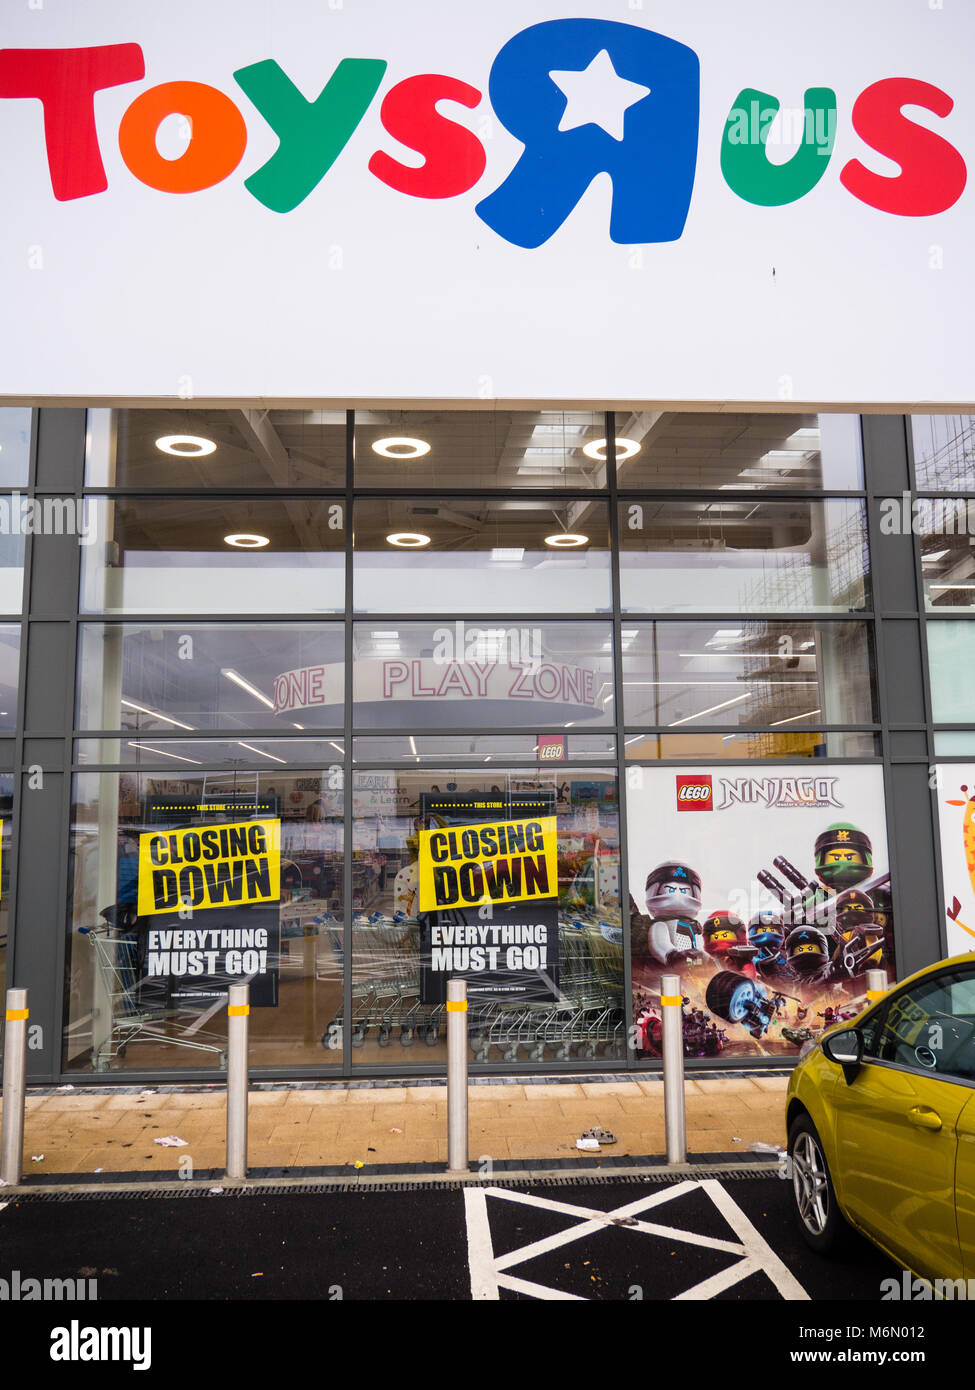 New Toys R Us Store In Reading Berkshire England Stock Photo